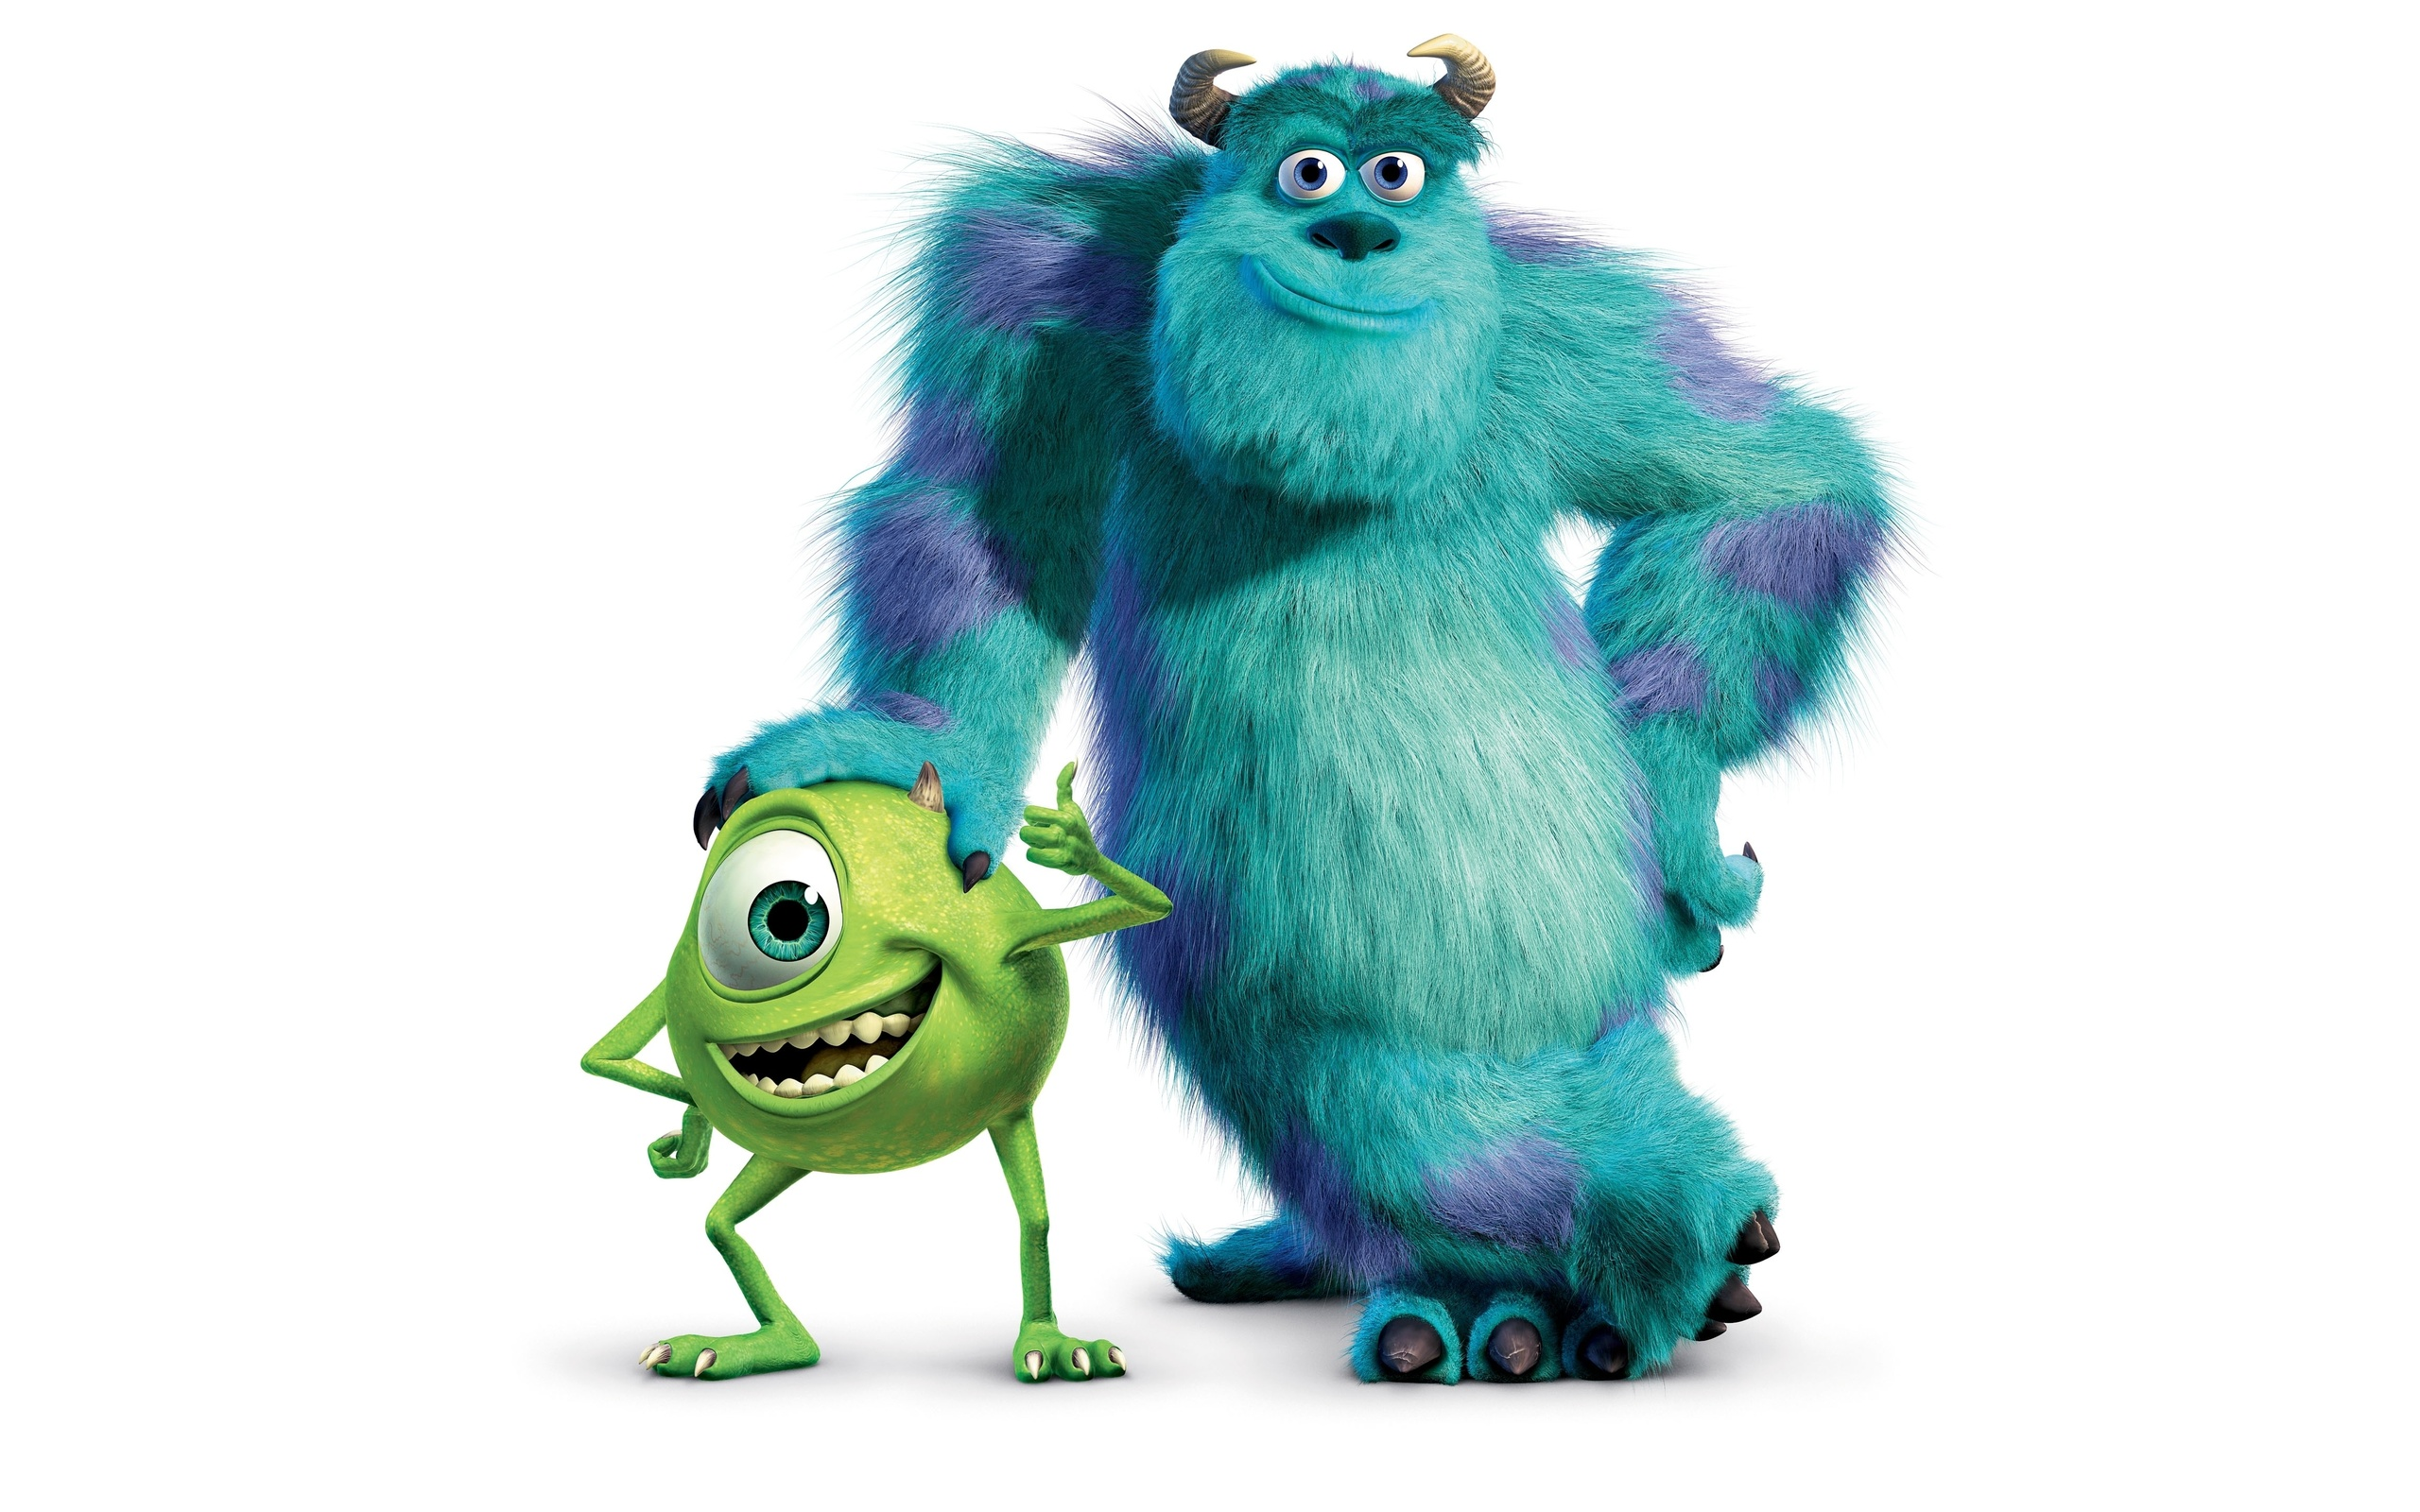 monsters inc hd wallpaper background image 2560x1600 id